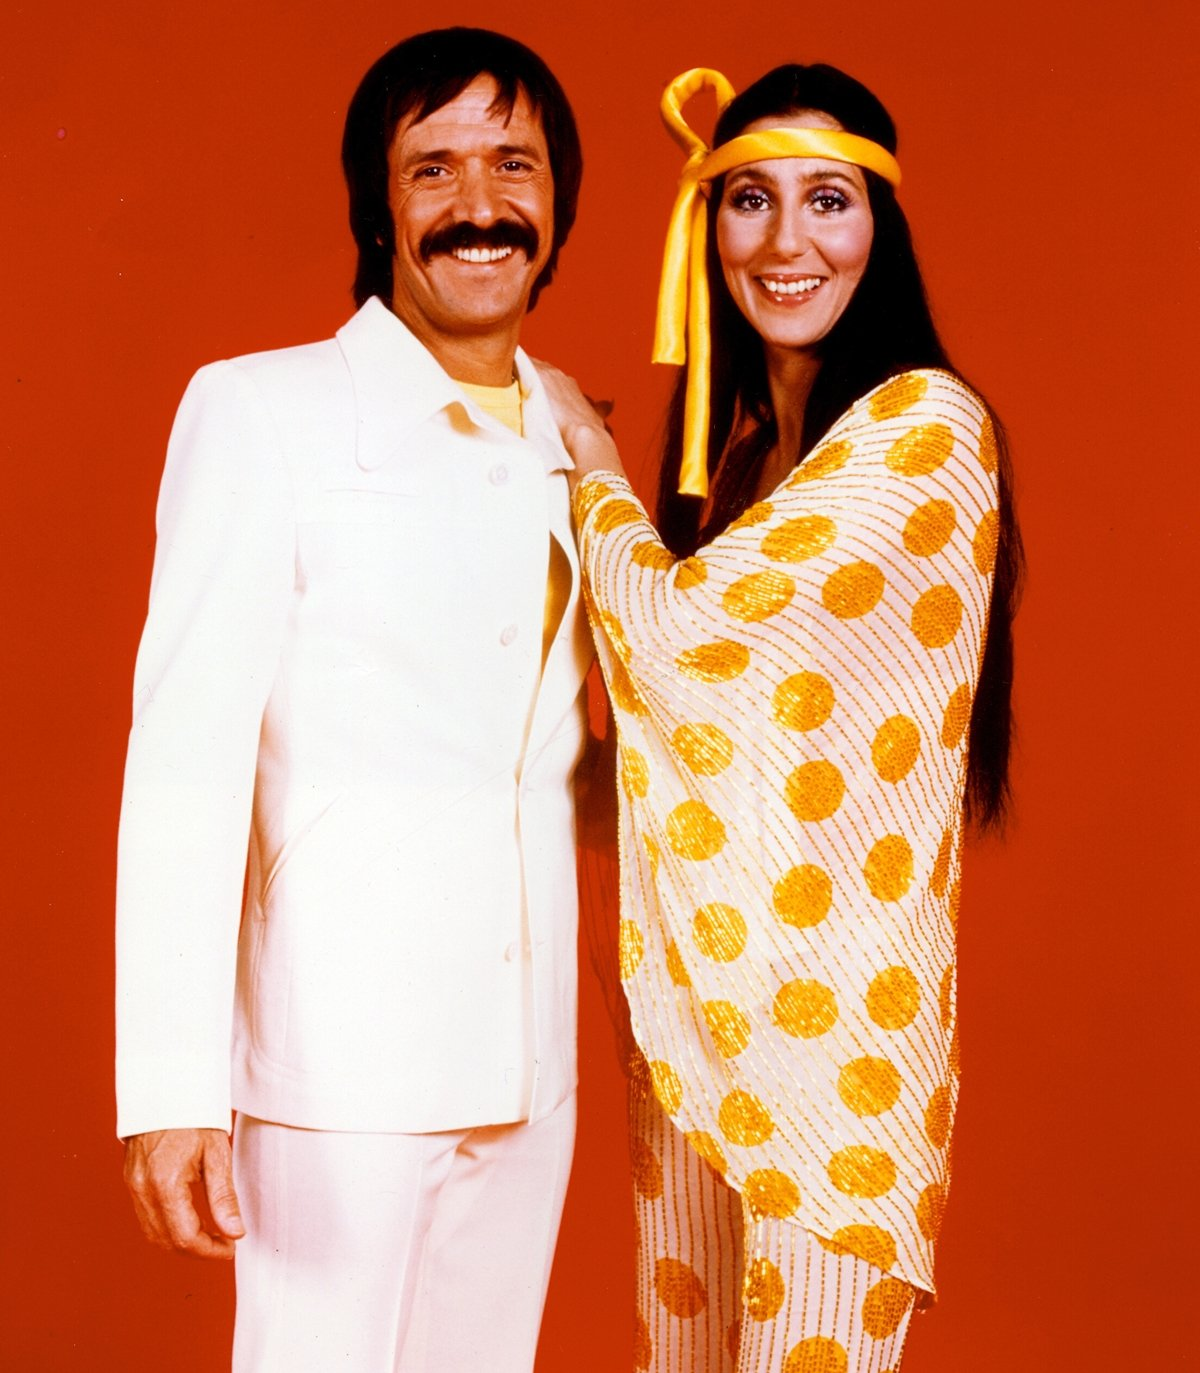 Chaz Salvatore Bono is the only child of the singing duo Sonny and Cher